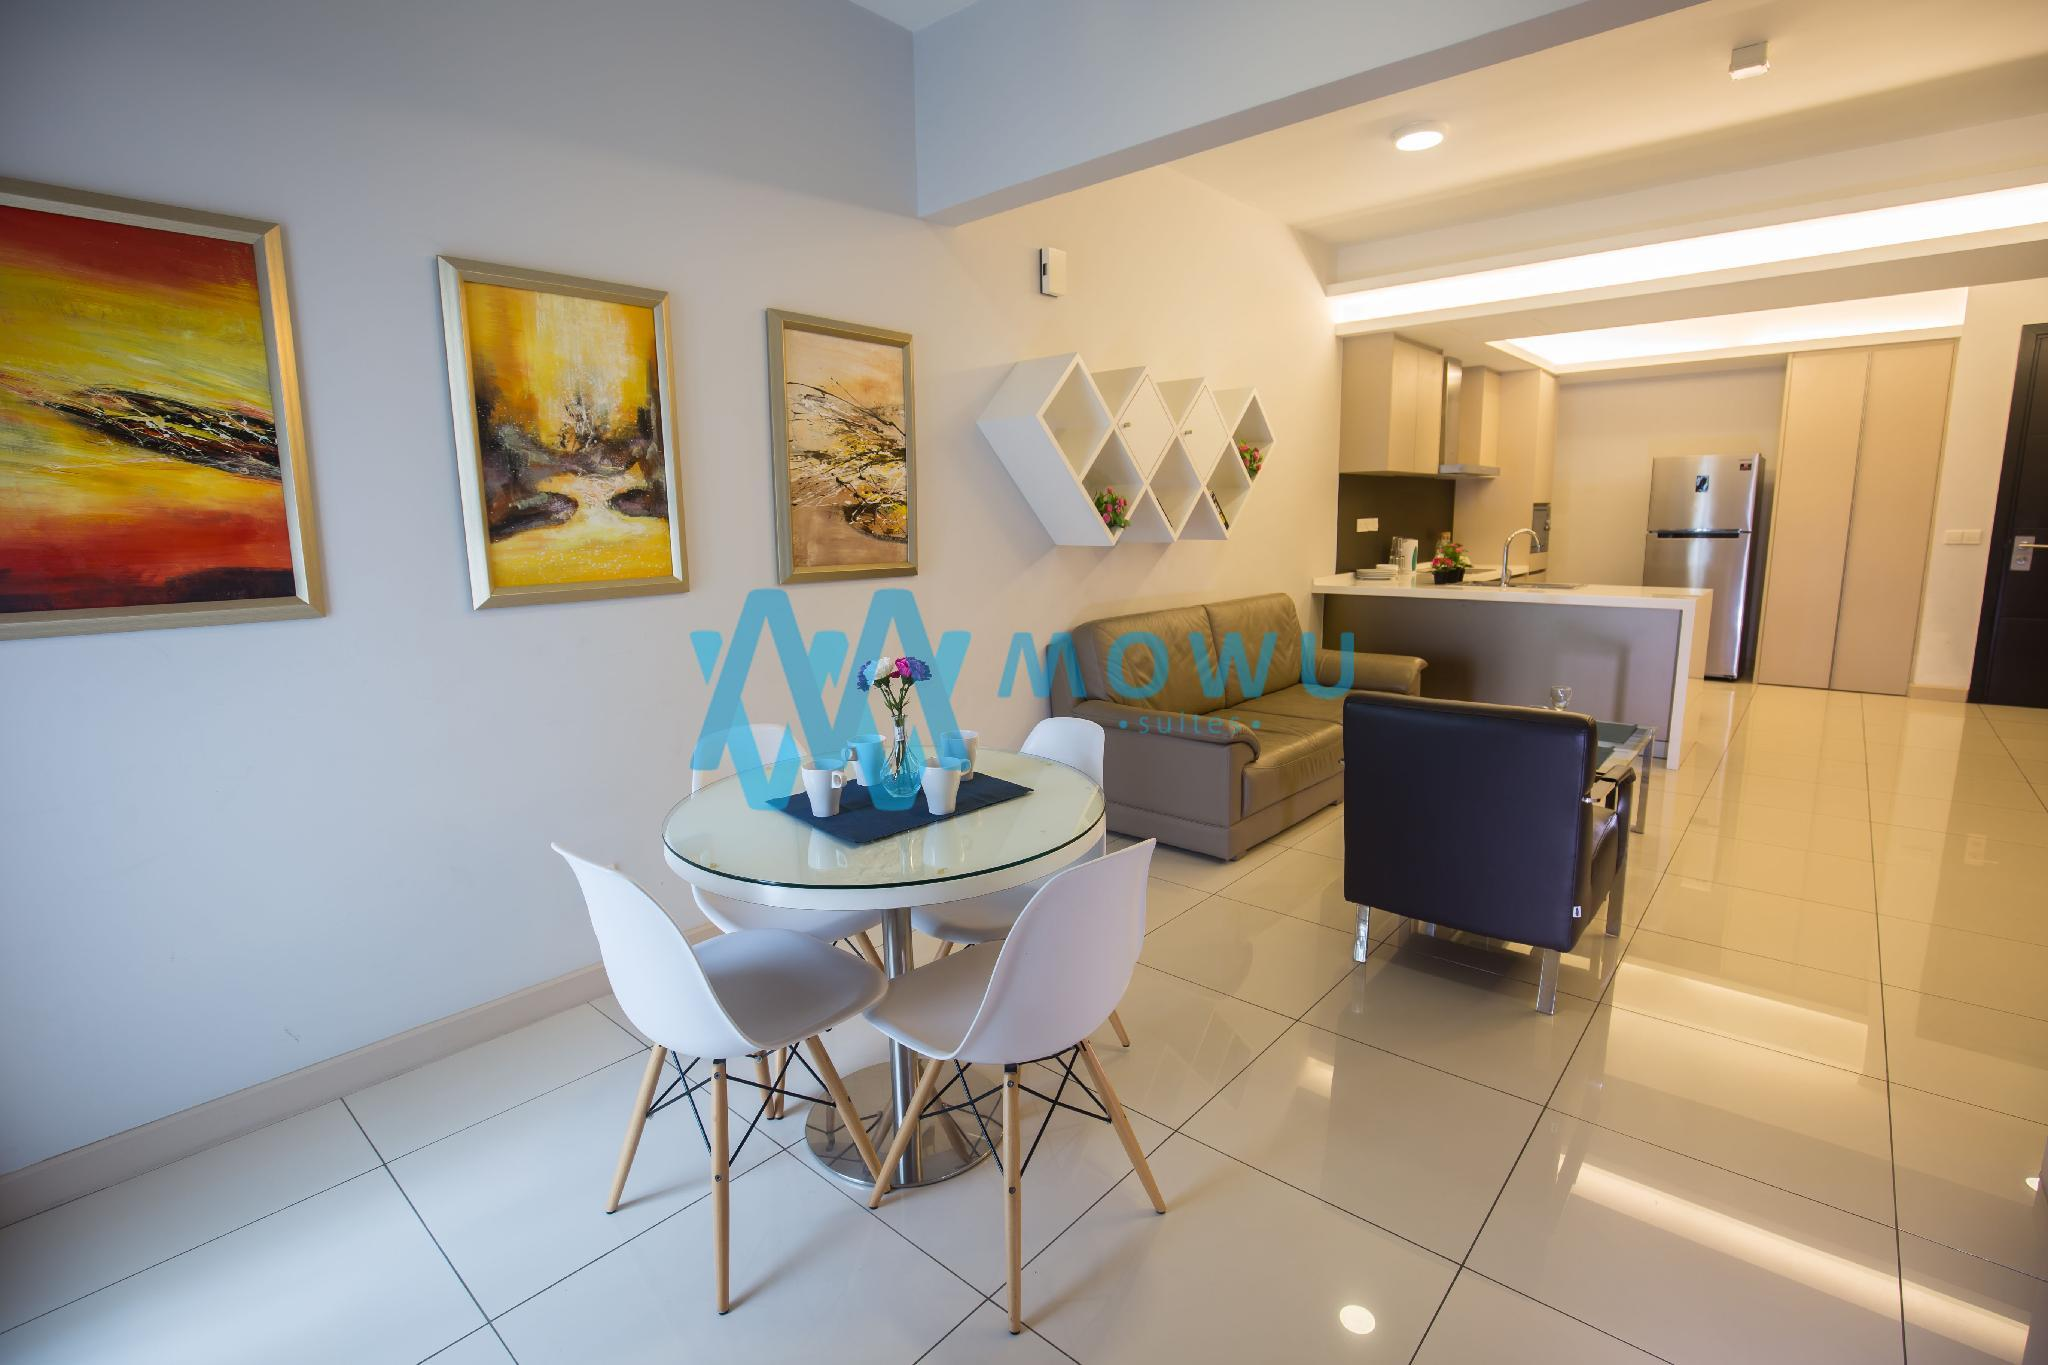 Superior Διαμέρισμα 1 Υπνοδωματίου (Superior 1-Bedroom Apartment)